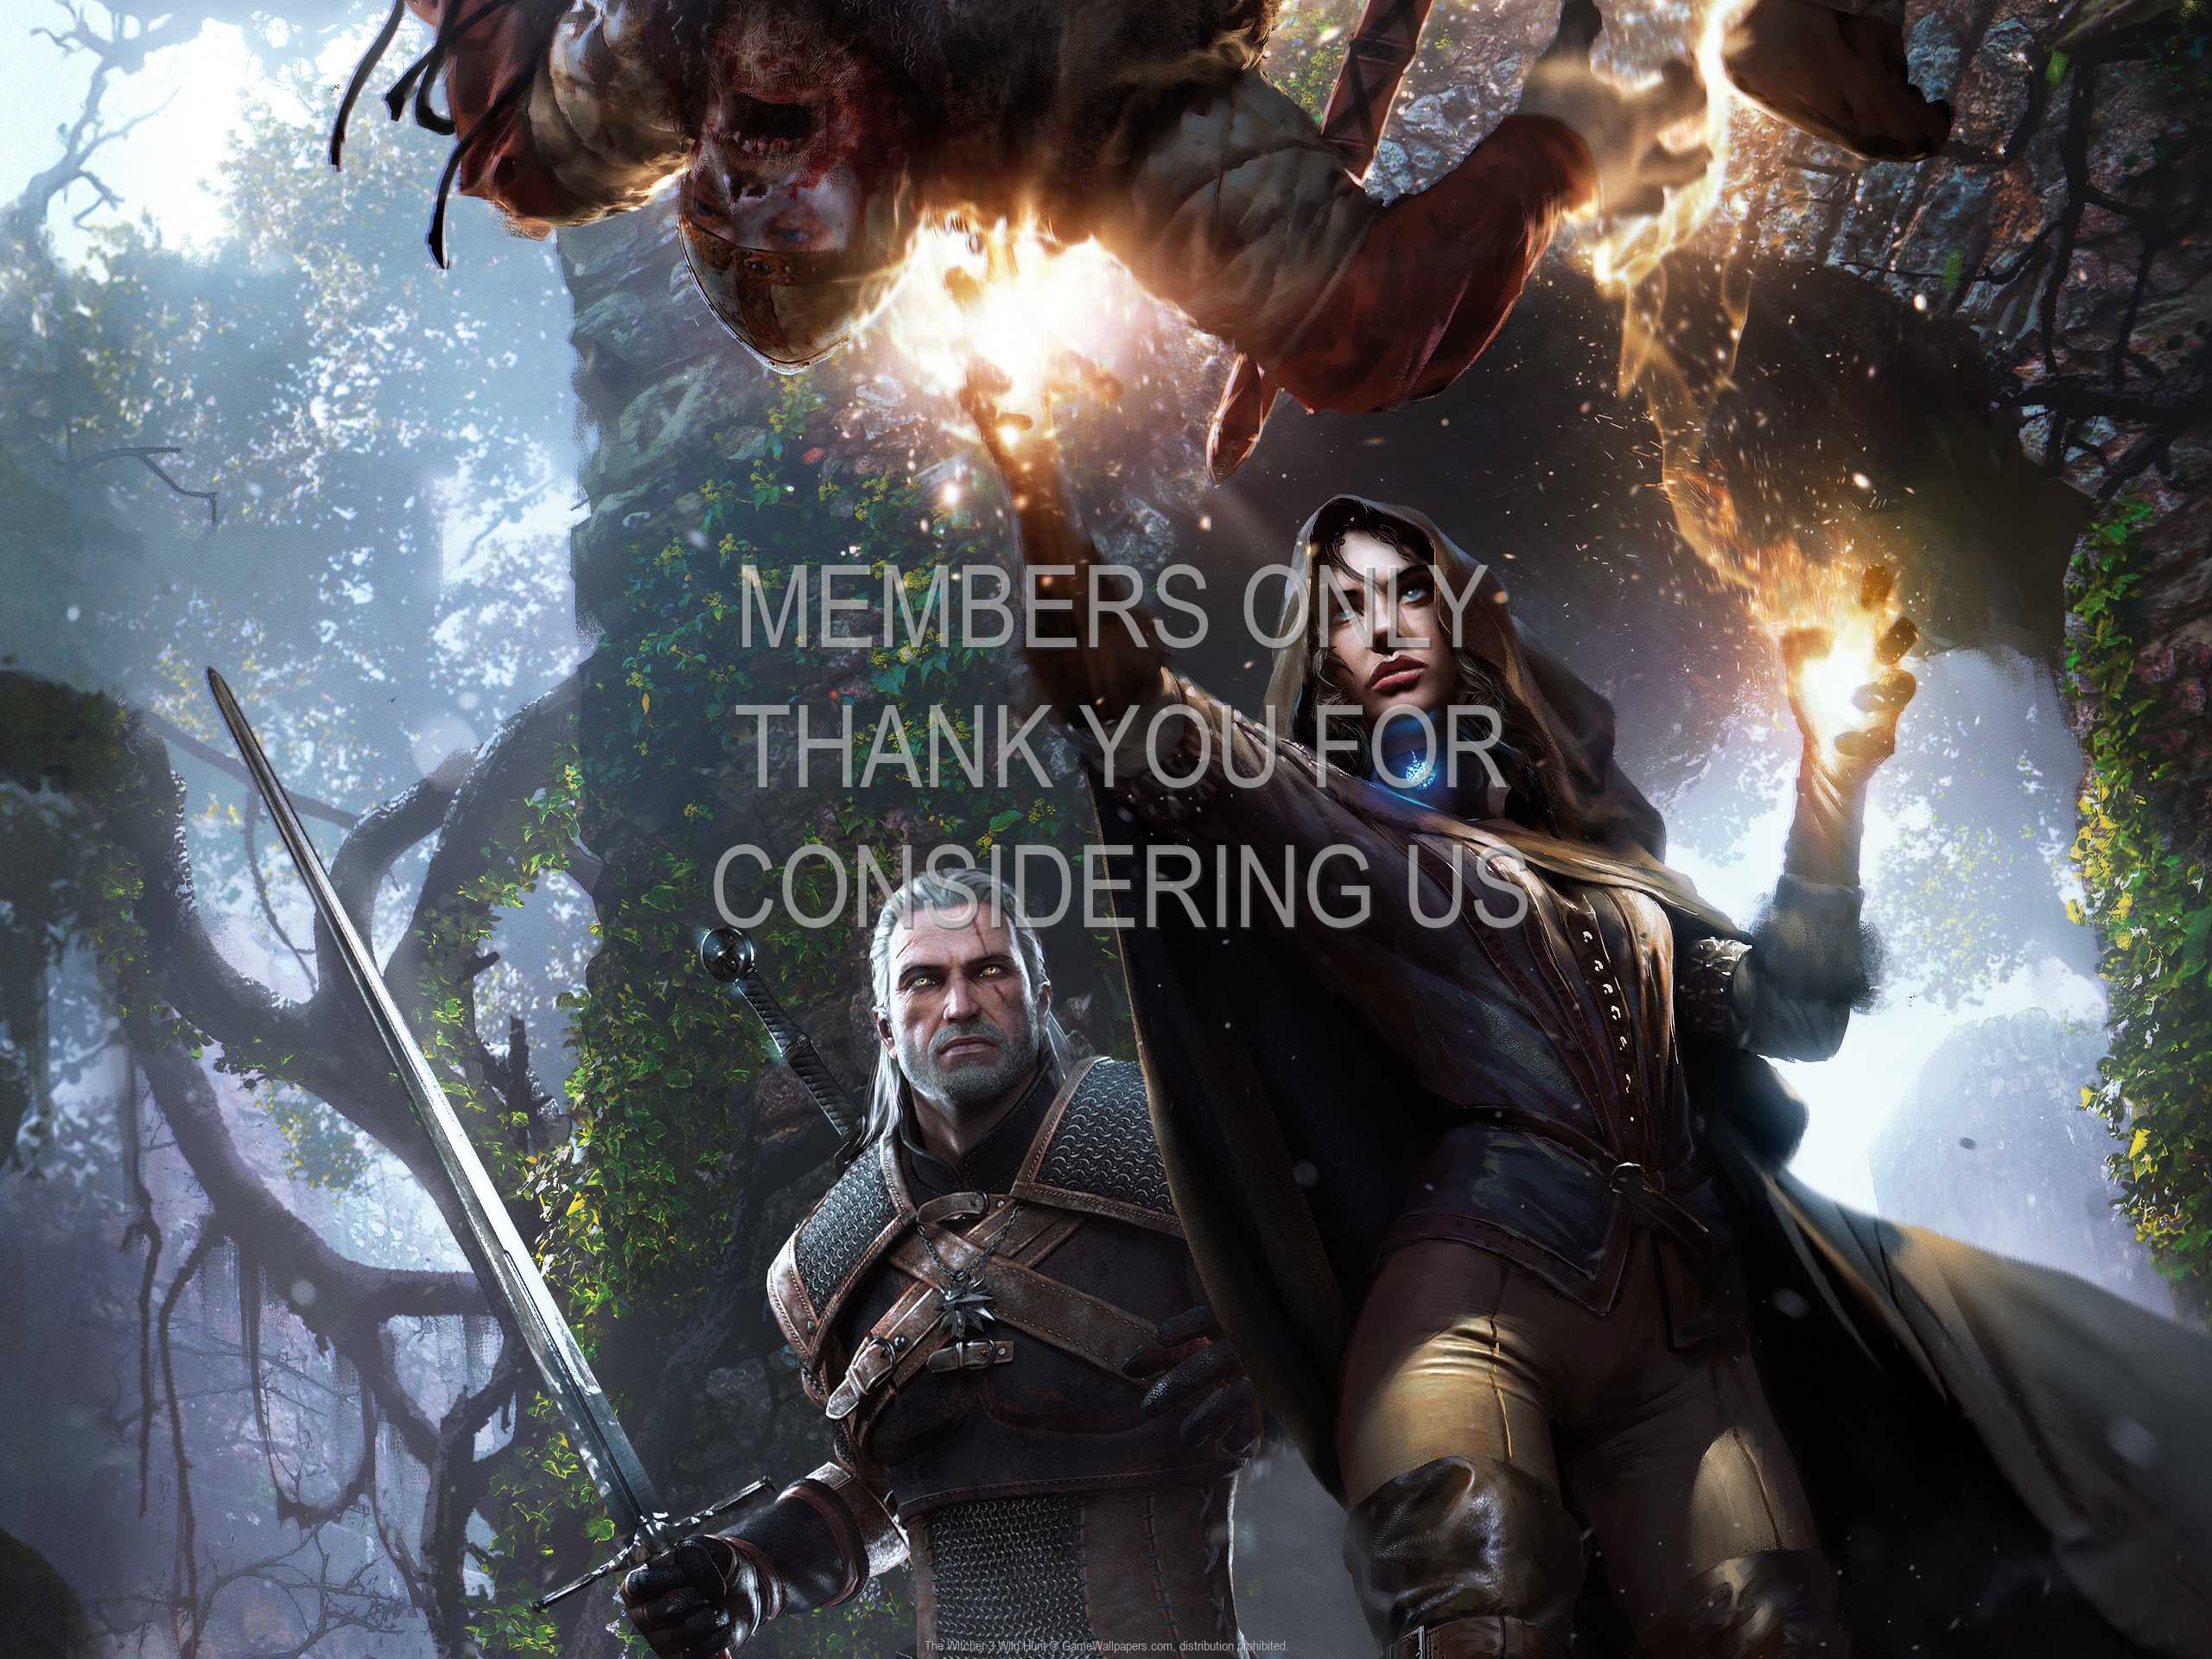 The Witcher 3: Wild Hunt 1080p Horizontal Mobiele achtergrond 18